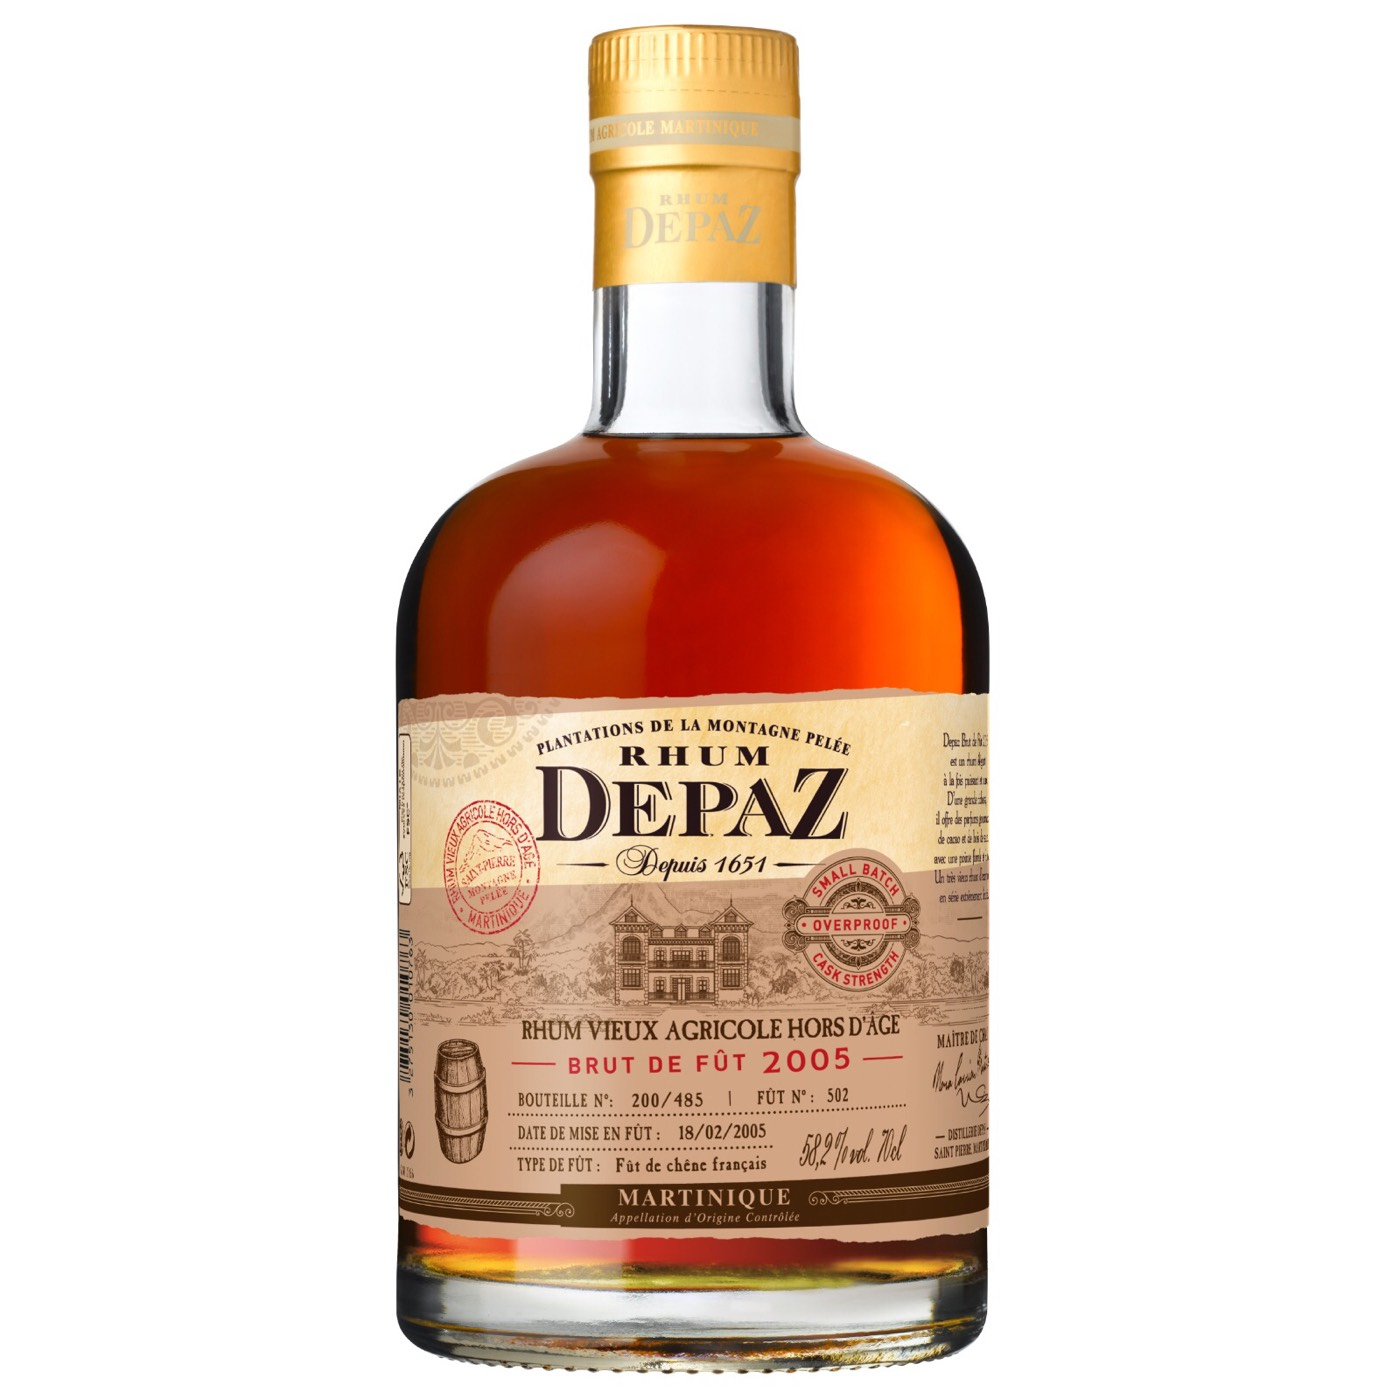 Bottle image of Small Batch